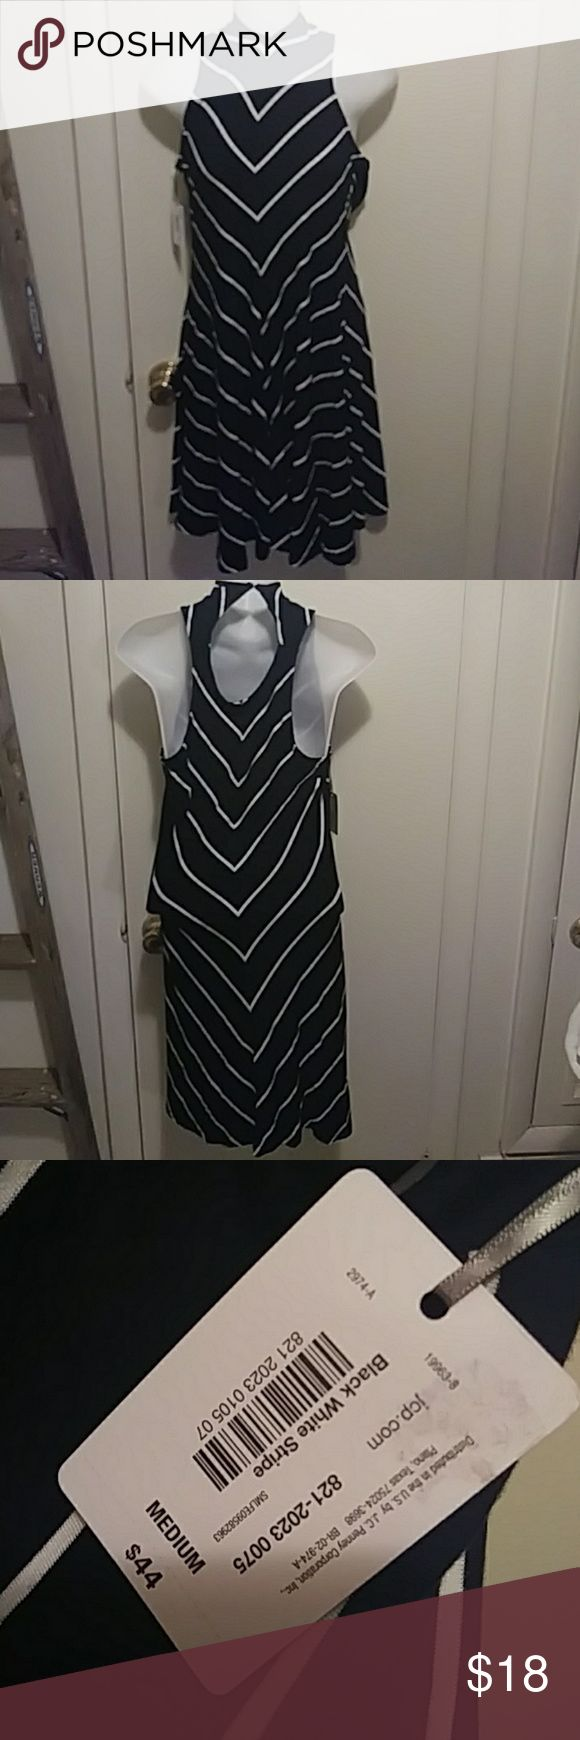 """BELLE SKY"" CHEVRON PRINT DRESS NWT SIZE M Brand new with original tag. Designed by Belle Sky this gorgeous dress is form fitting made of 95% Rayon and 5% Spandex. Black with white chevron-style stripes. Belle Sky Dresses Mini"